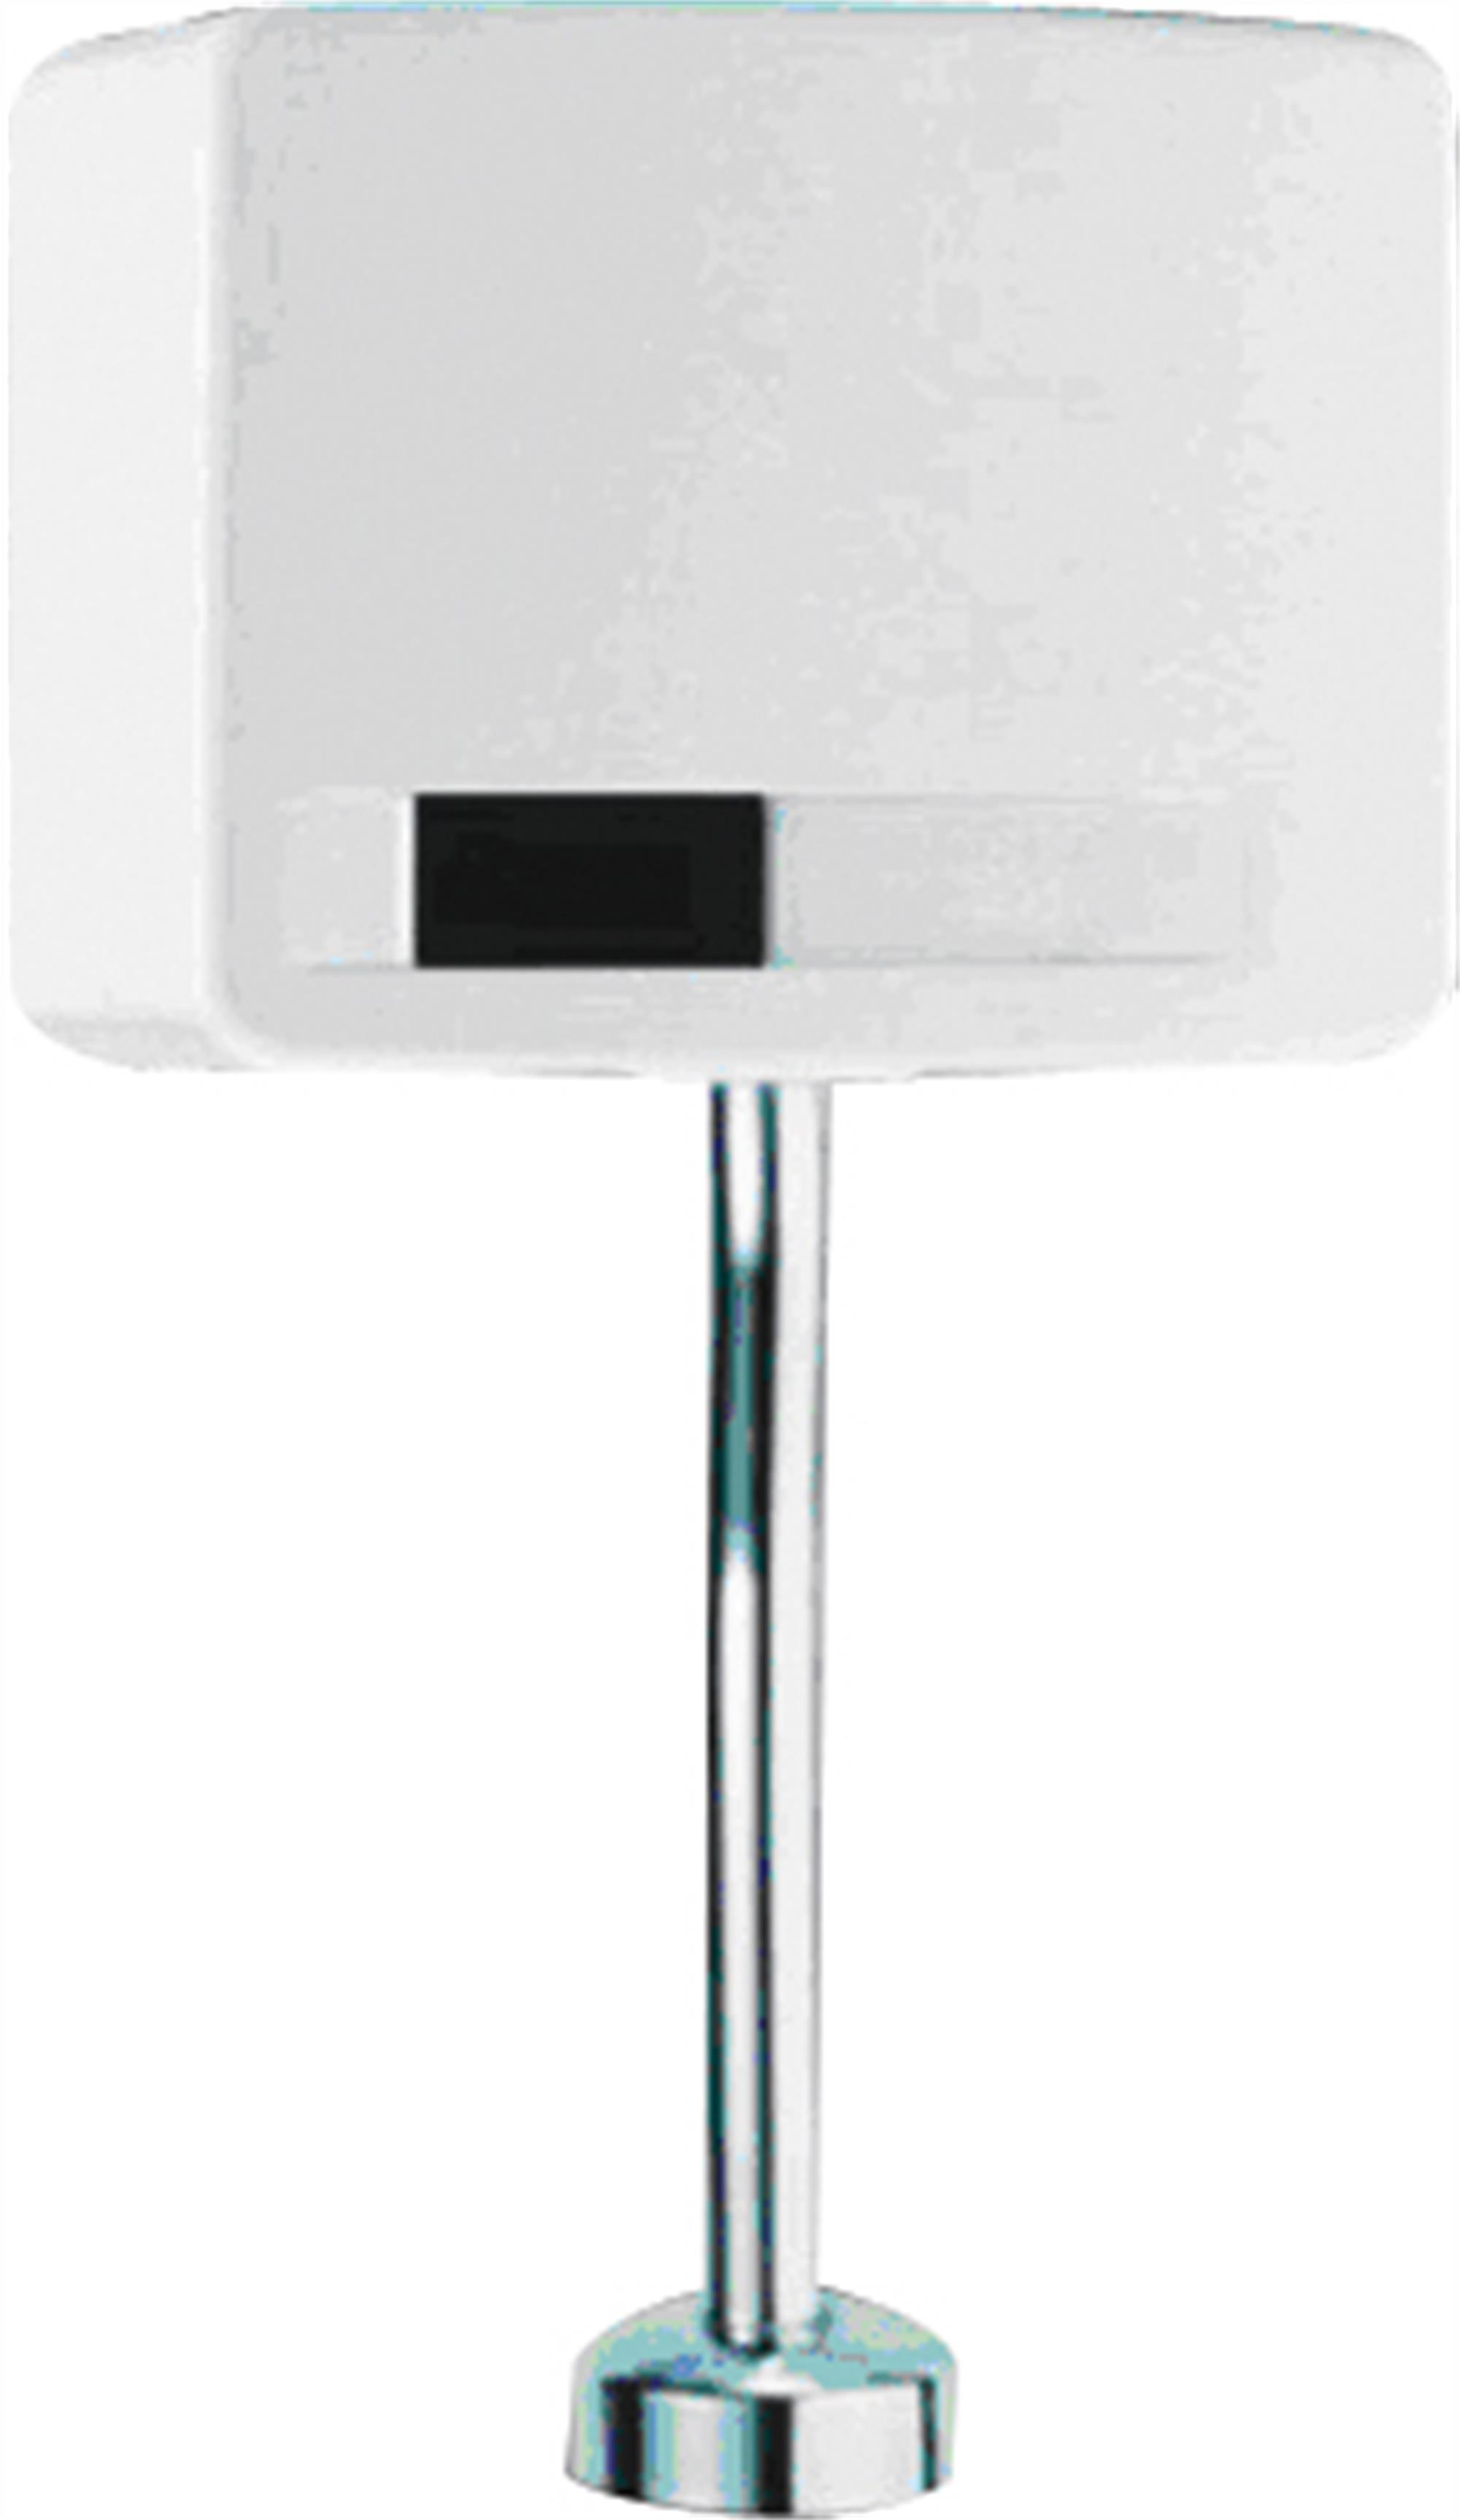 self-powered automatic urinal flusher